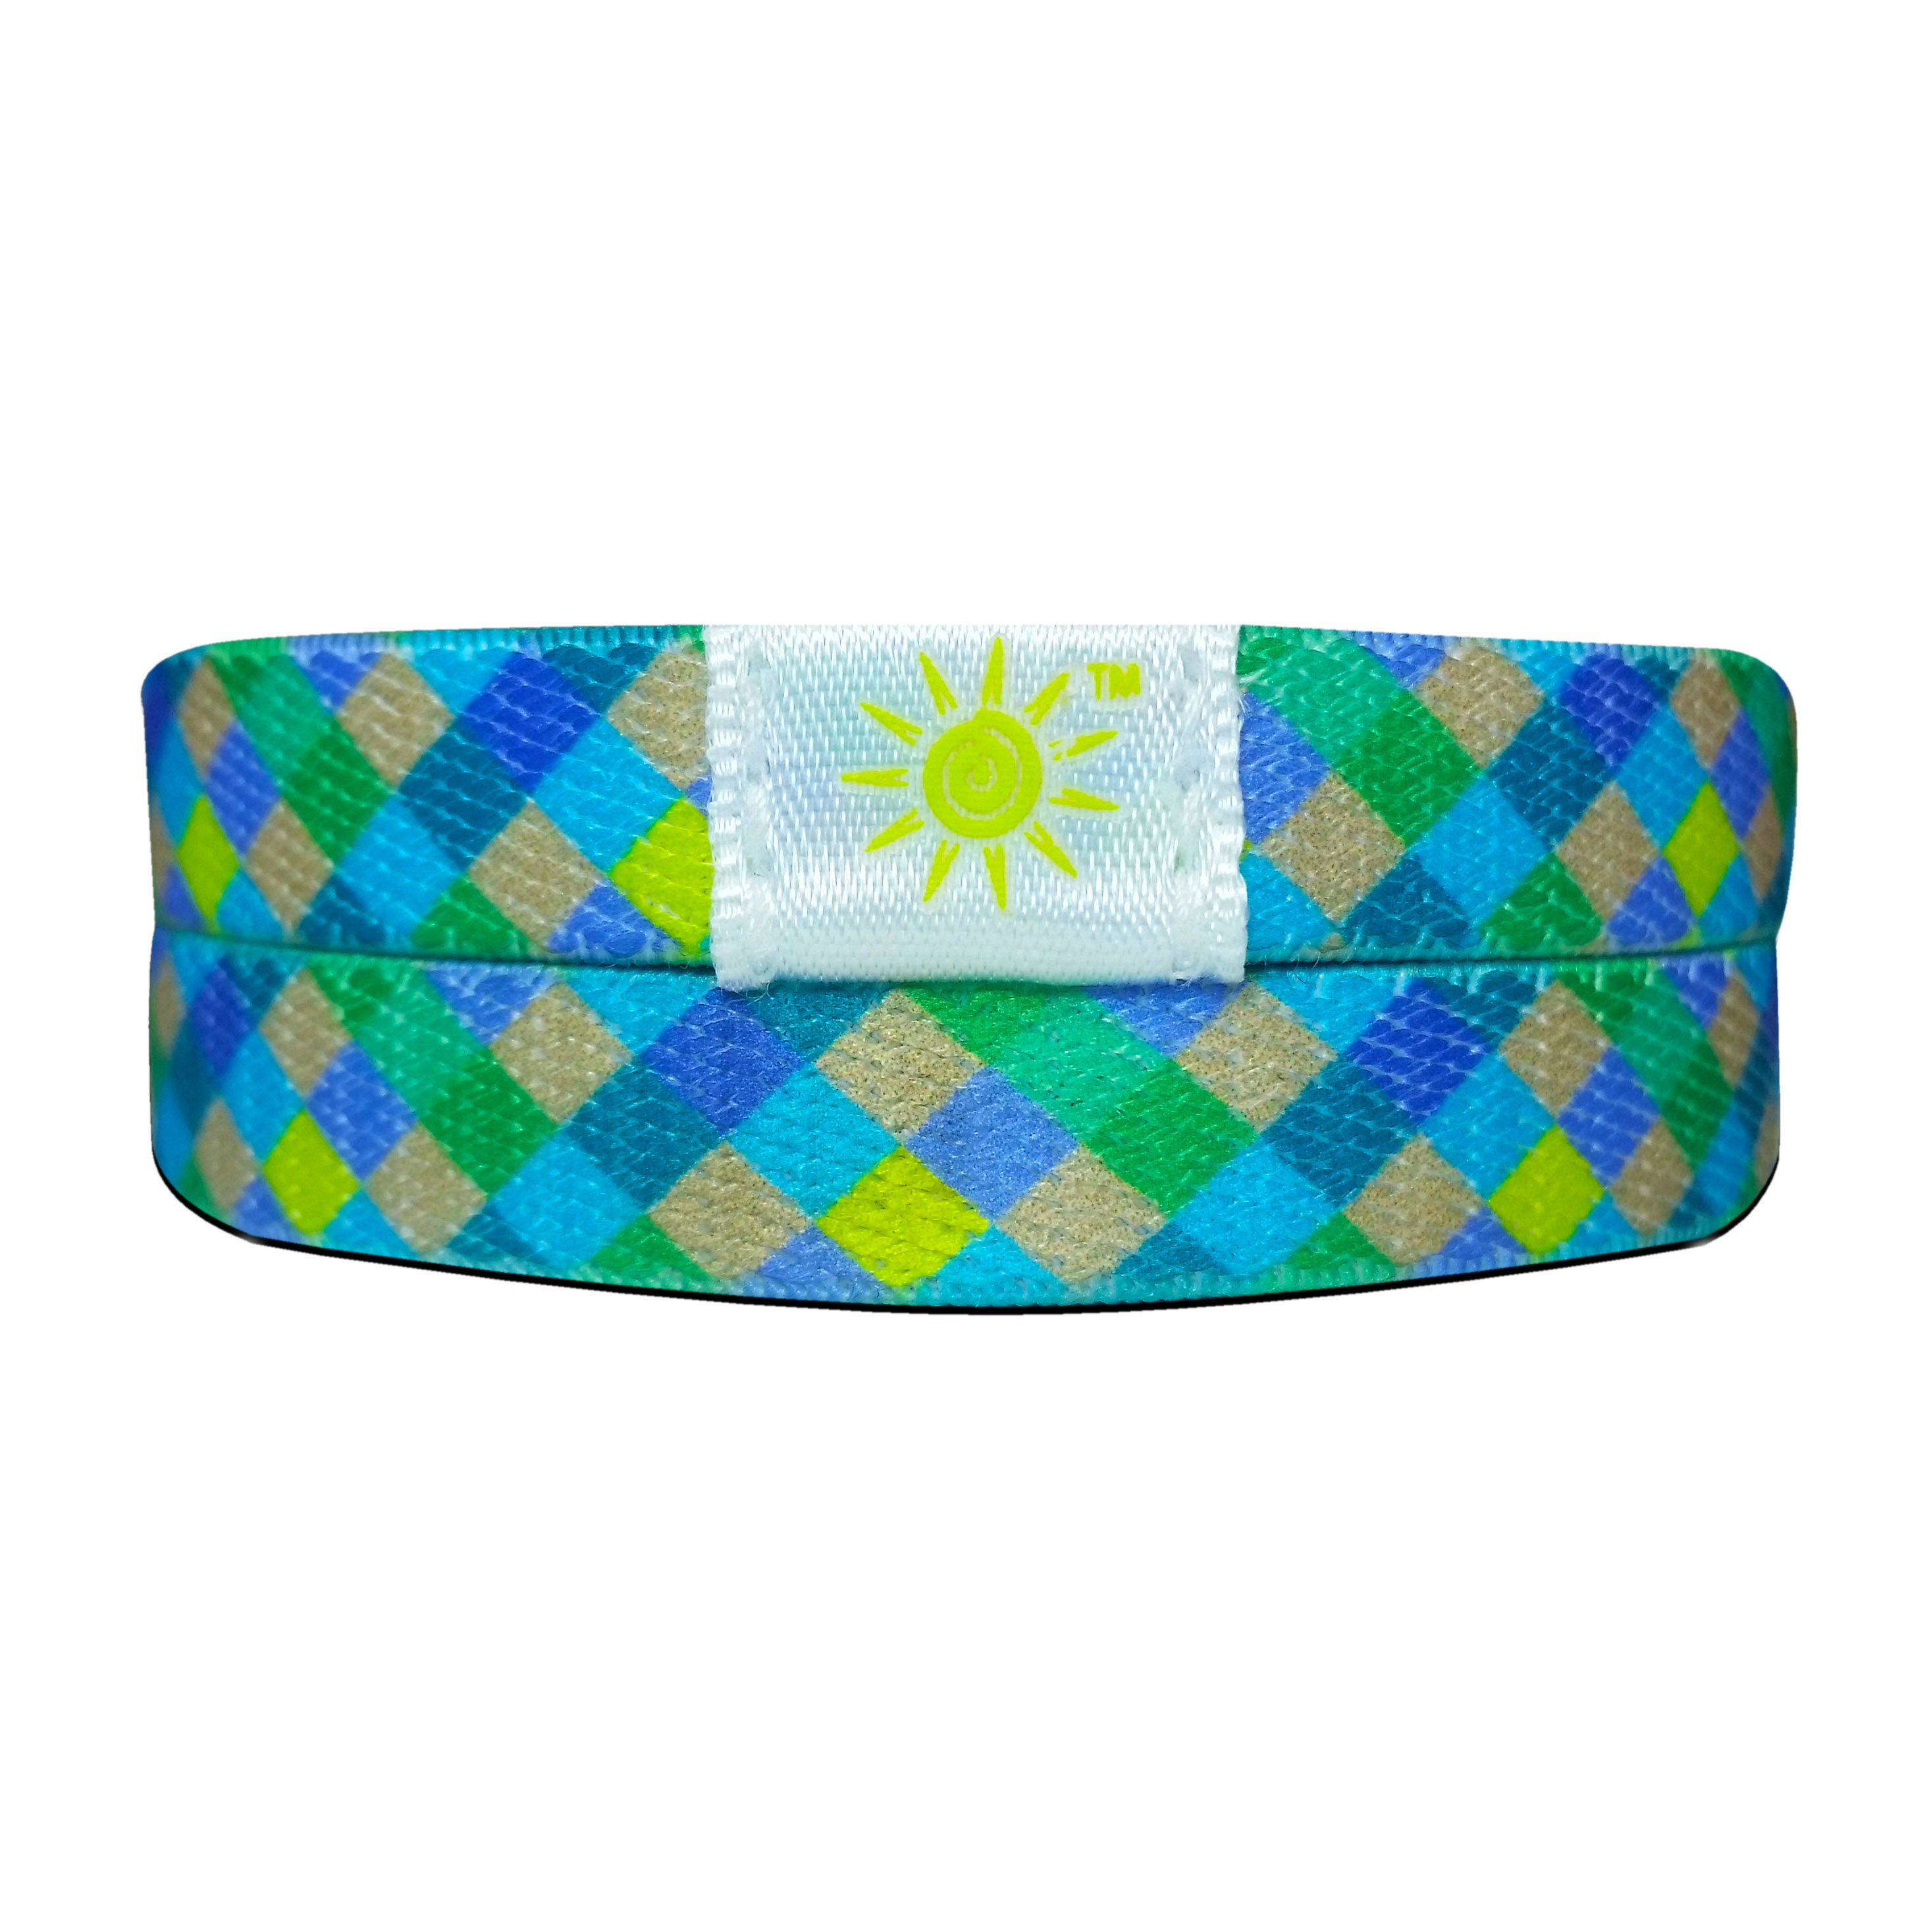 Blue & Green Wrist-Band